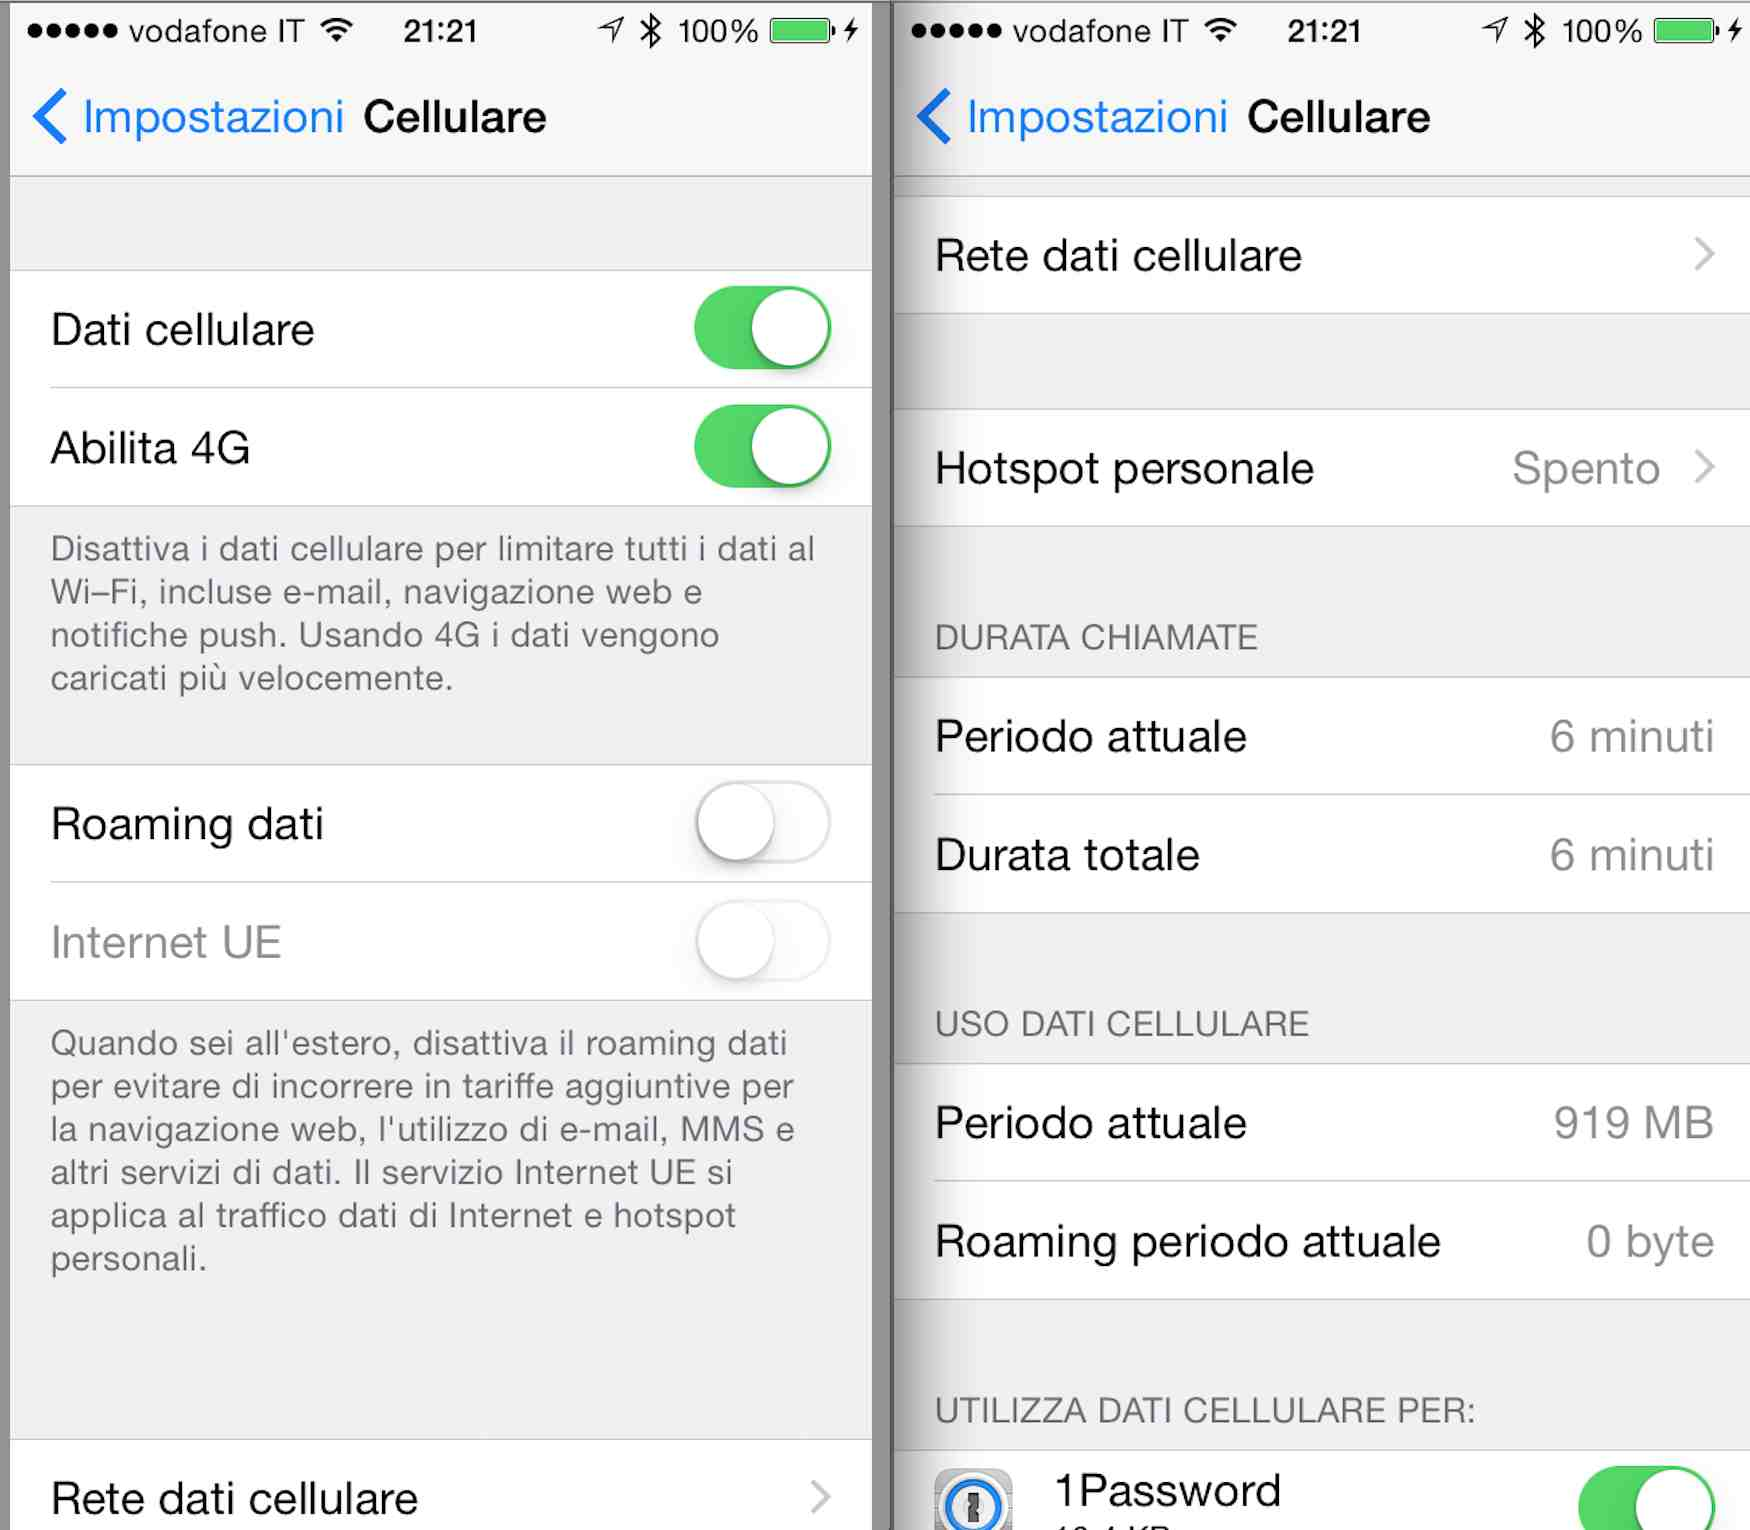 Configurare il roaming - Apple iPhone 7 - iOS 10 - CoopVoce Guides